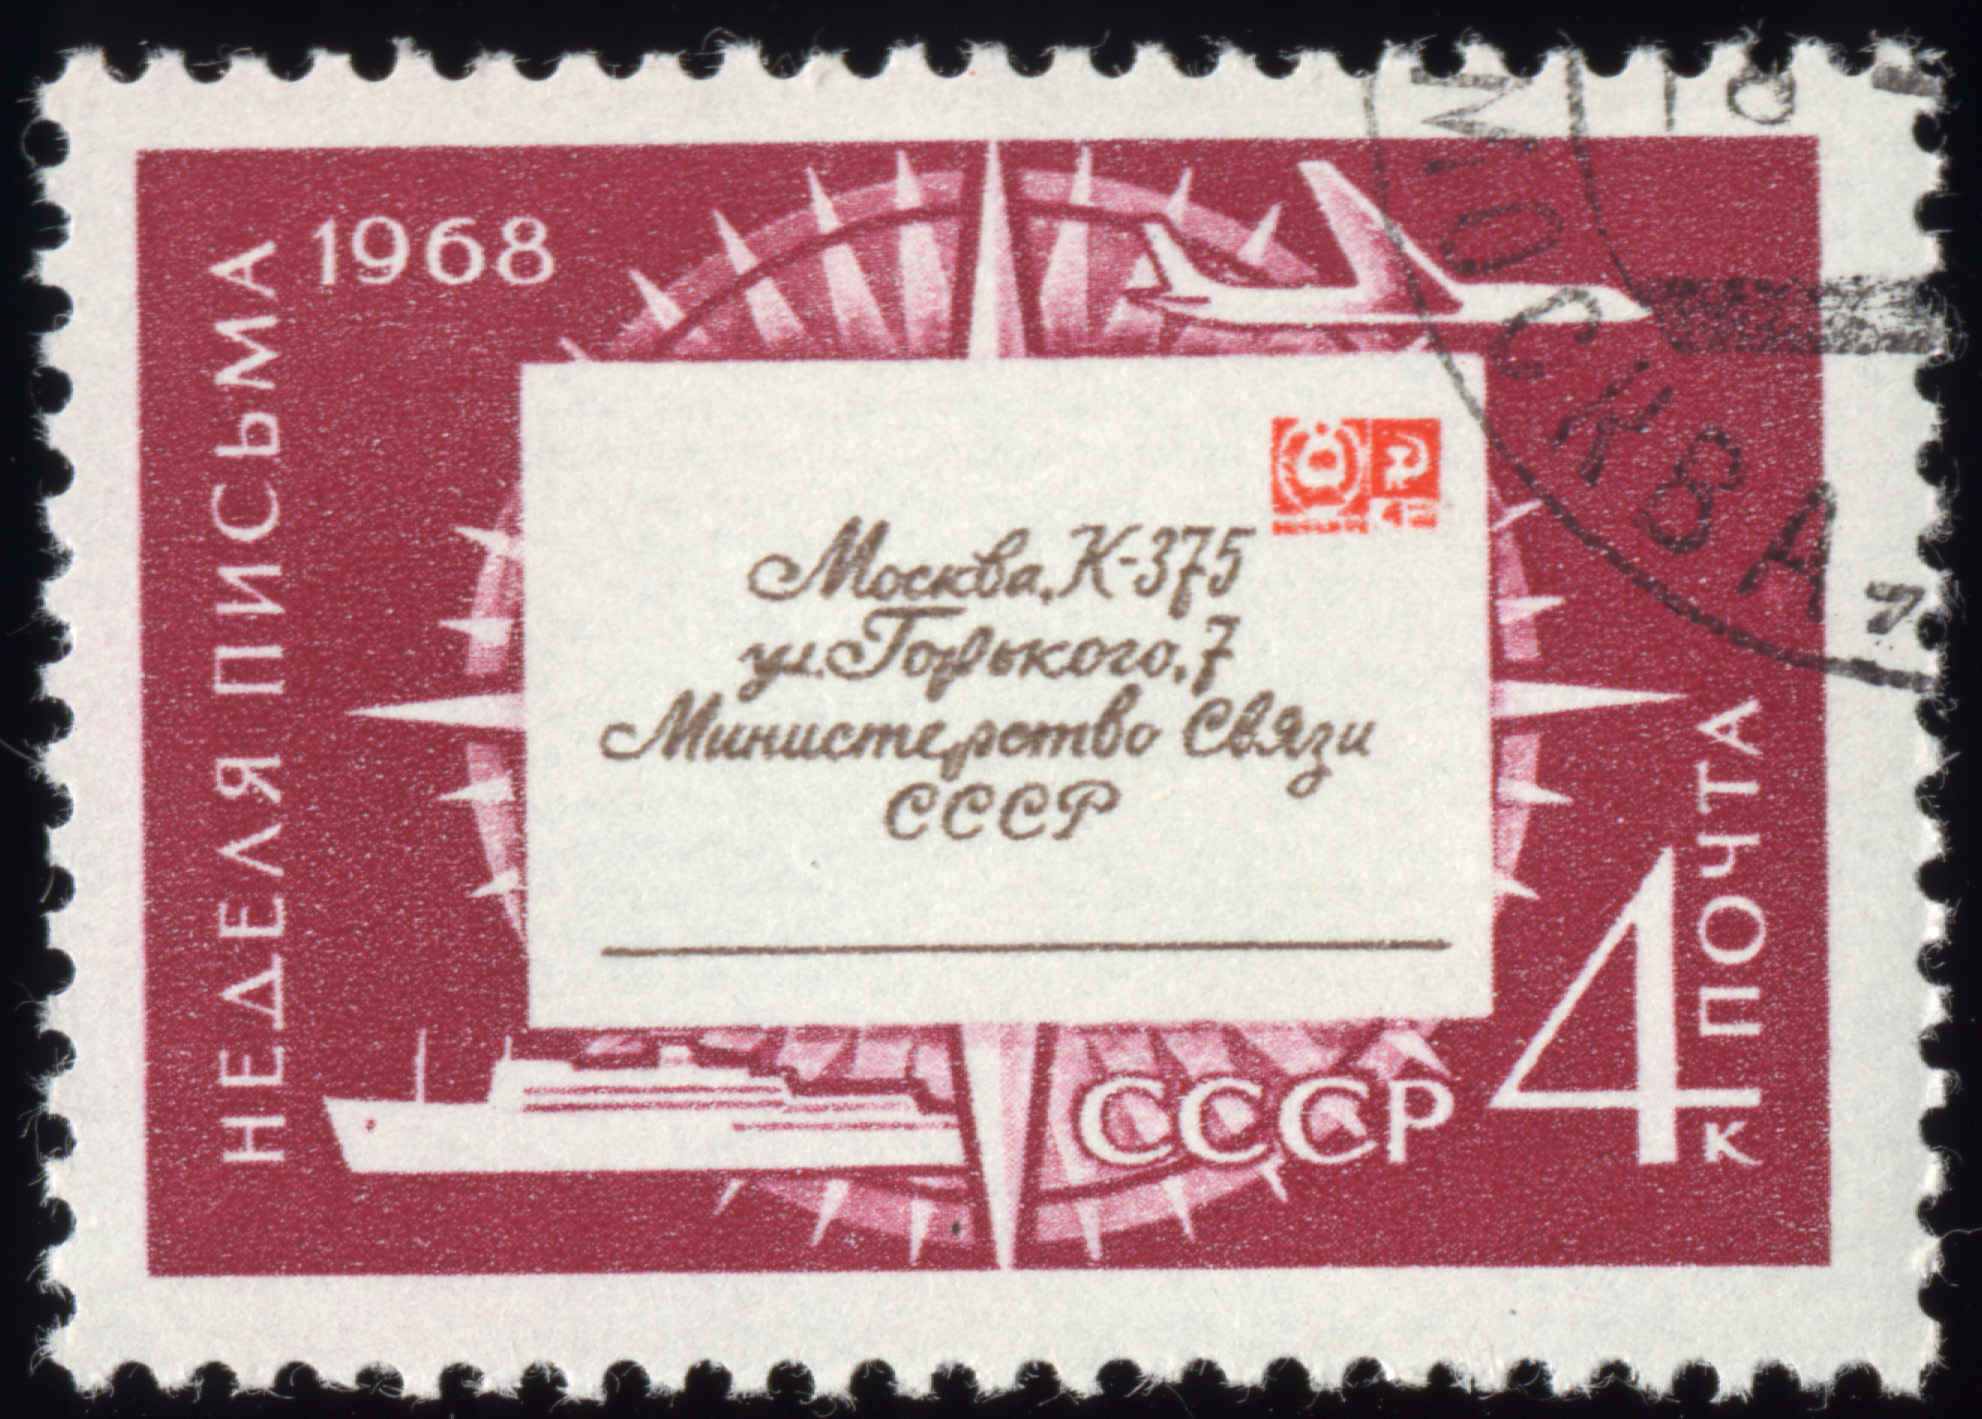 File The Soviet Union 1968 Cpa 3663 Stamp Envelope Modern Postal Transport And